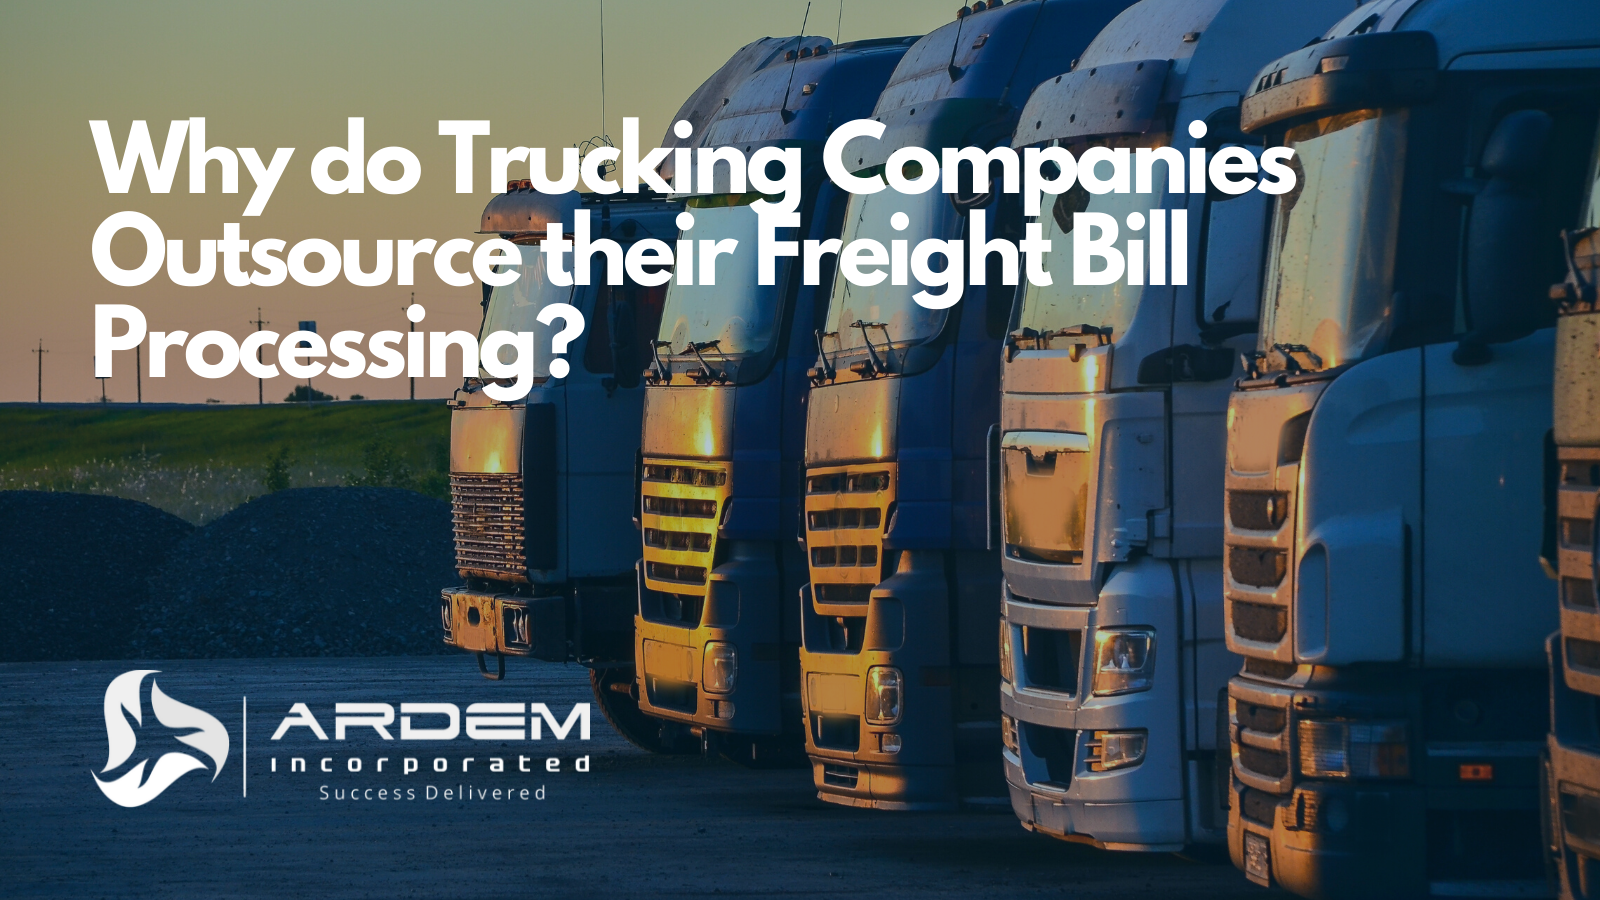 Trucking Companies Outsource